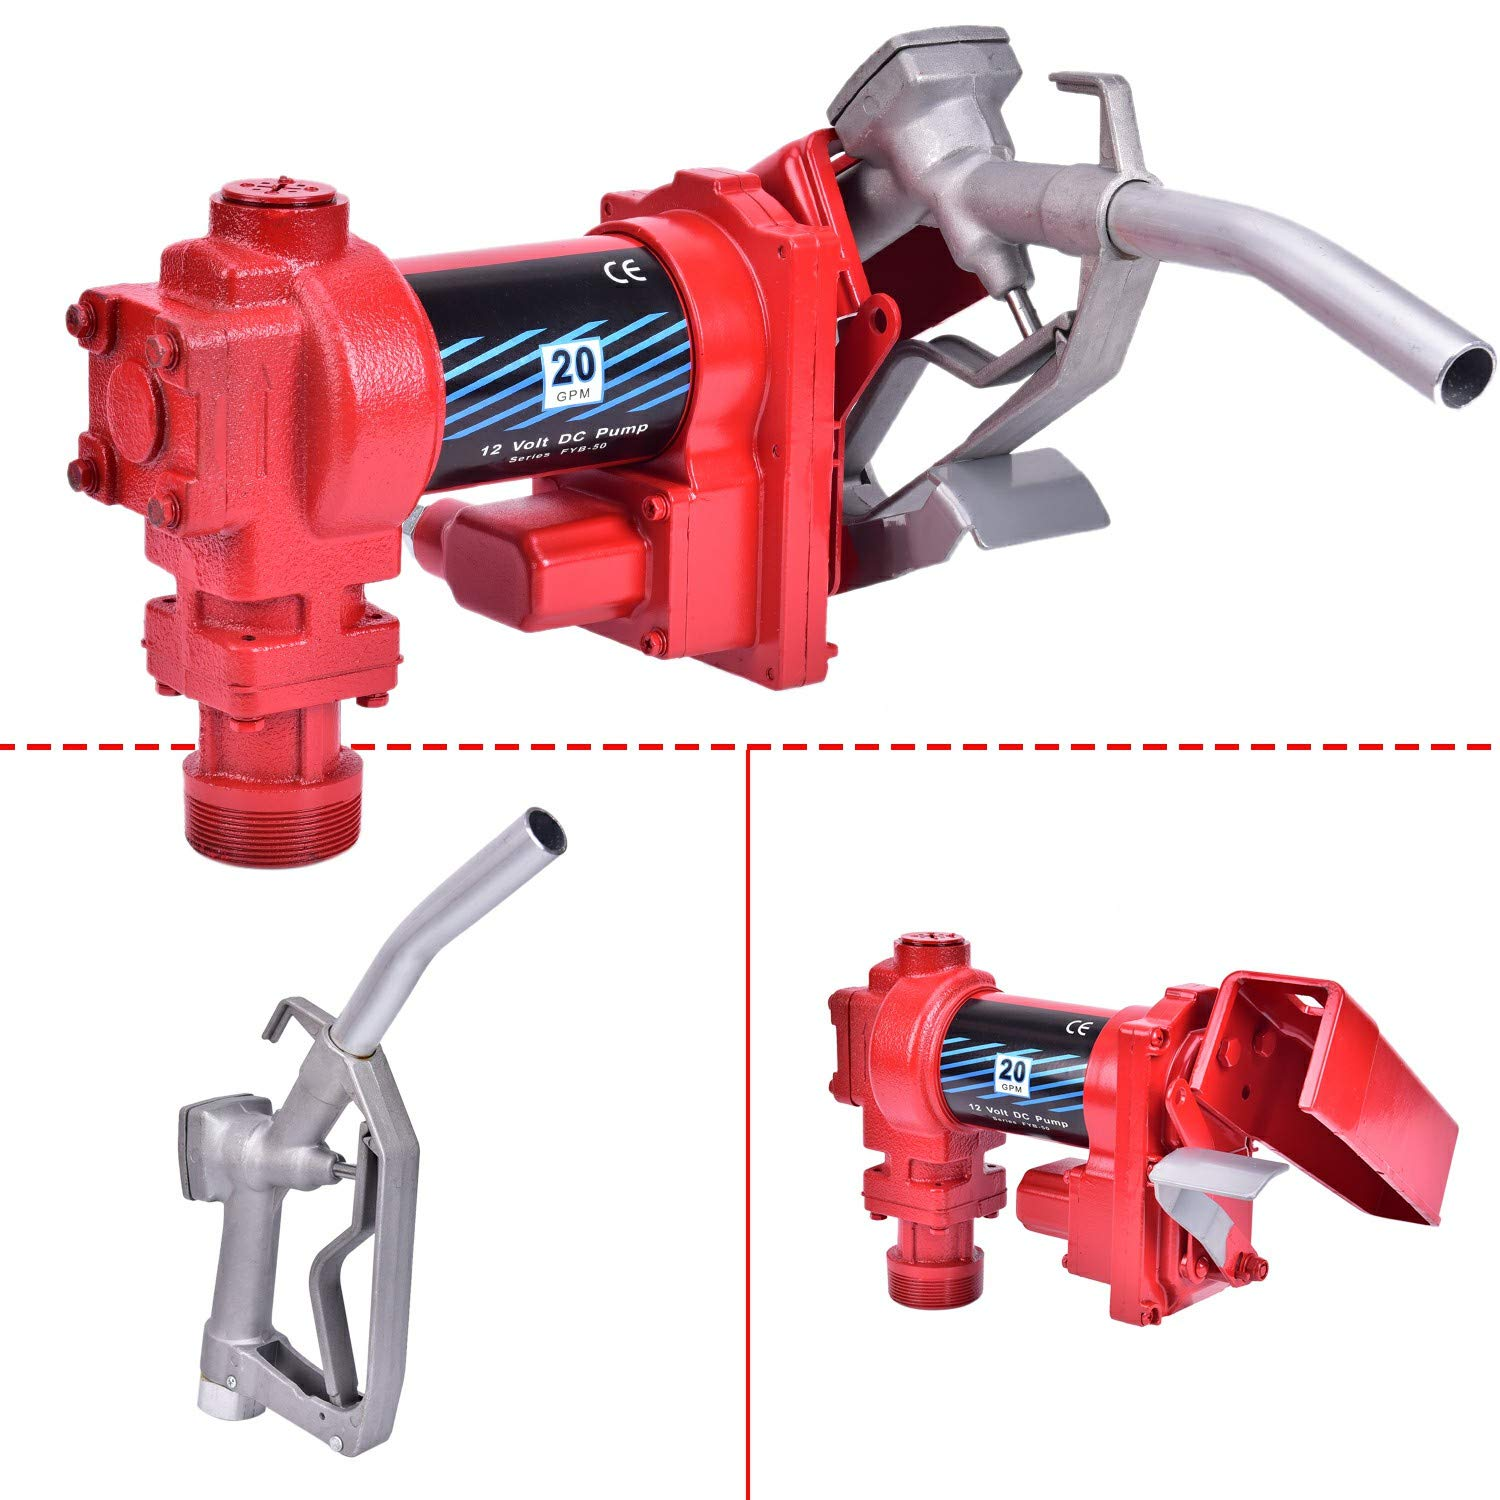 Red CLIENSY Gasoline Fuel Transfer Pump 12 Volt DC 20GPM Gas Diesel Kerosene Extractor Pump with Hose and Nozzle Kit